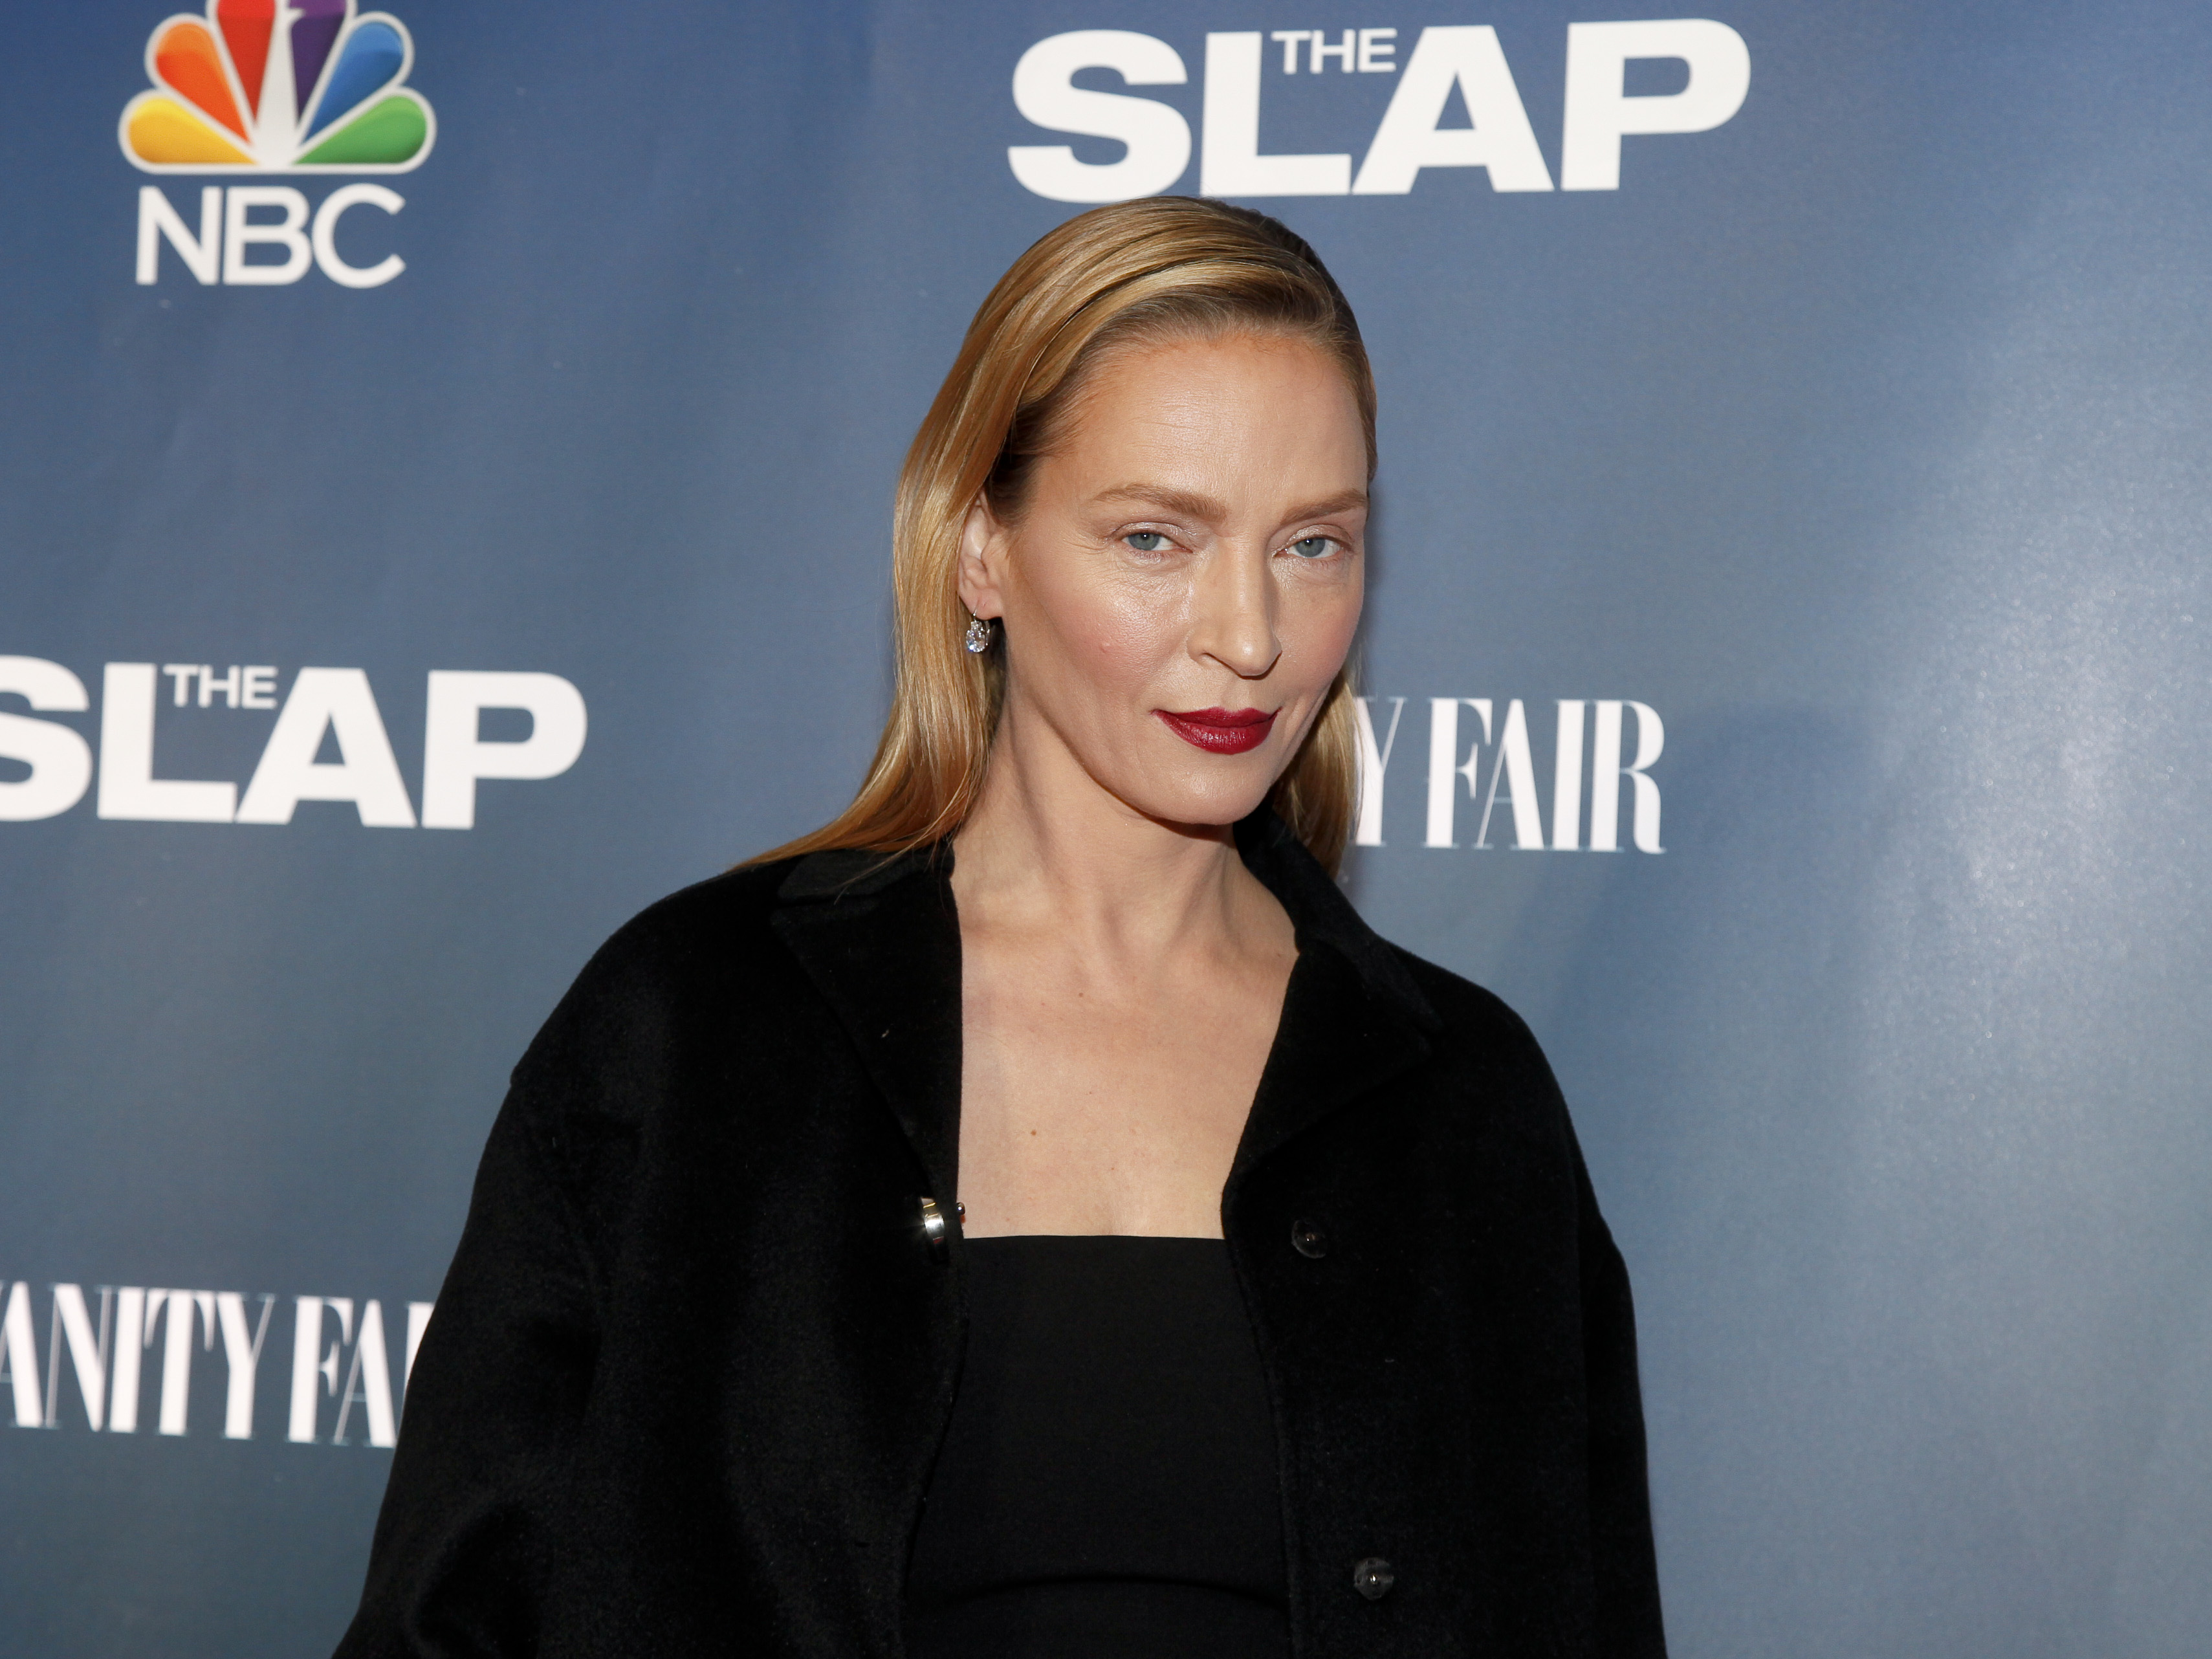 Uma Thurman attends NBC's  The Slap  miniseries premiere party at the New Museum on Monday, Feb. 9, 2015, in New York. (Photo by Andy Kropa/Invision/AP)